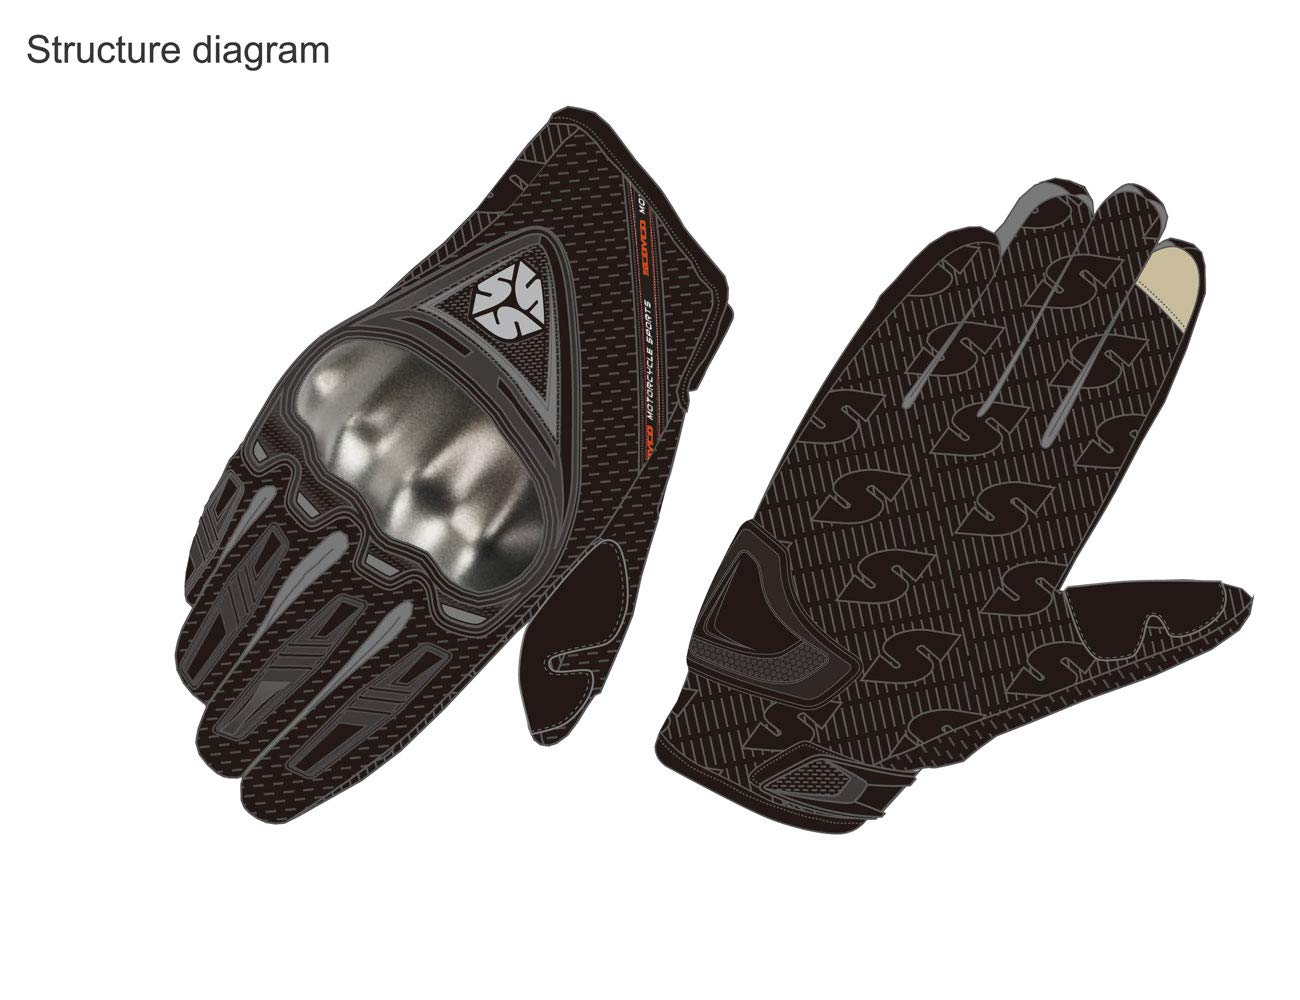 SCOYCO Men's Race Extreme Sports Protective Outdoor Motorcycle Gloves(Black,XL) by SCOYCO (Image #6)